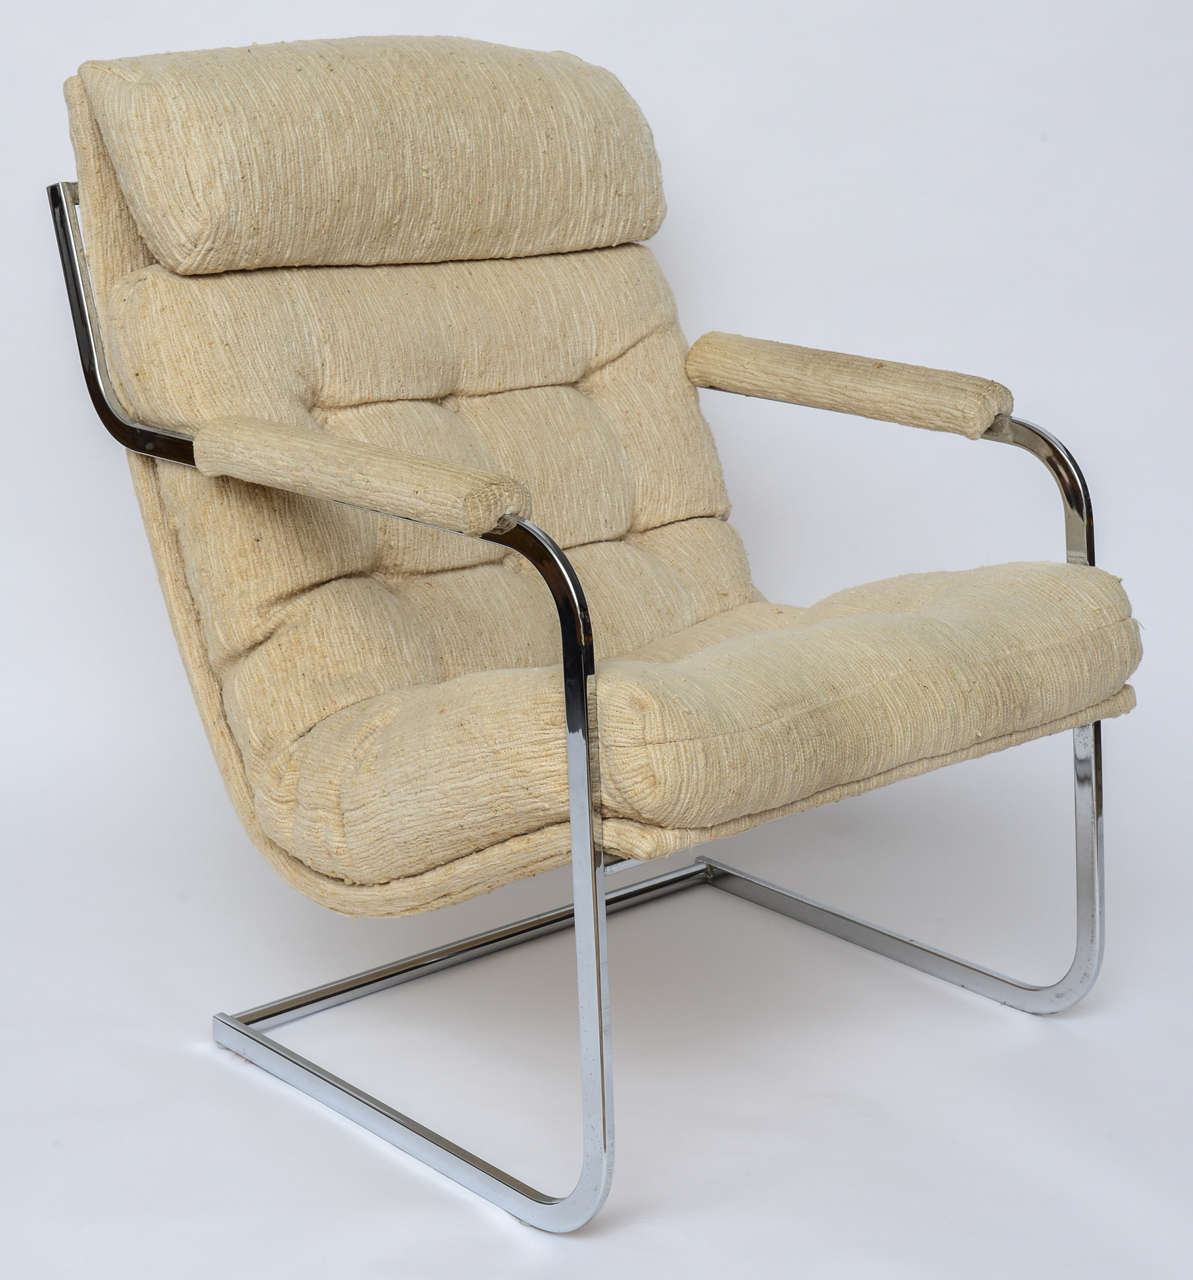 Milo baughman style cantilever lounge chair 1960s at 1stdibs for Sixties style chairs